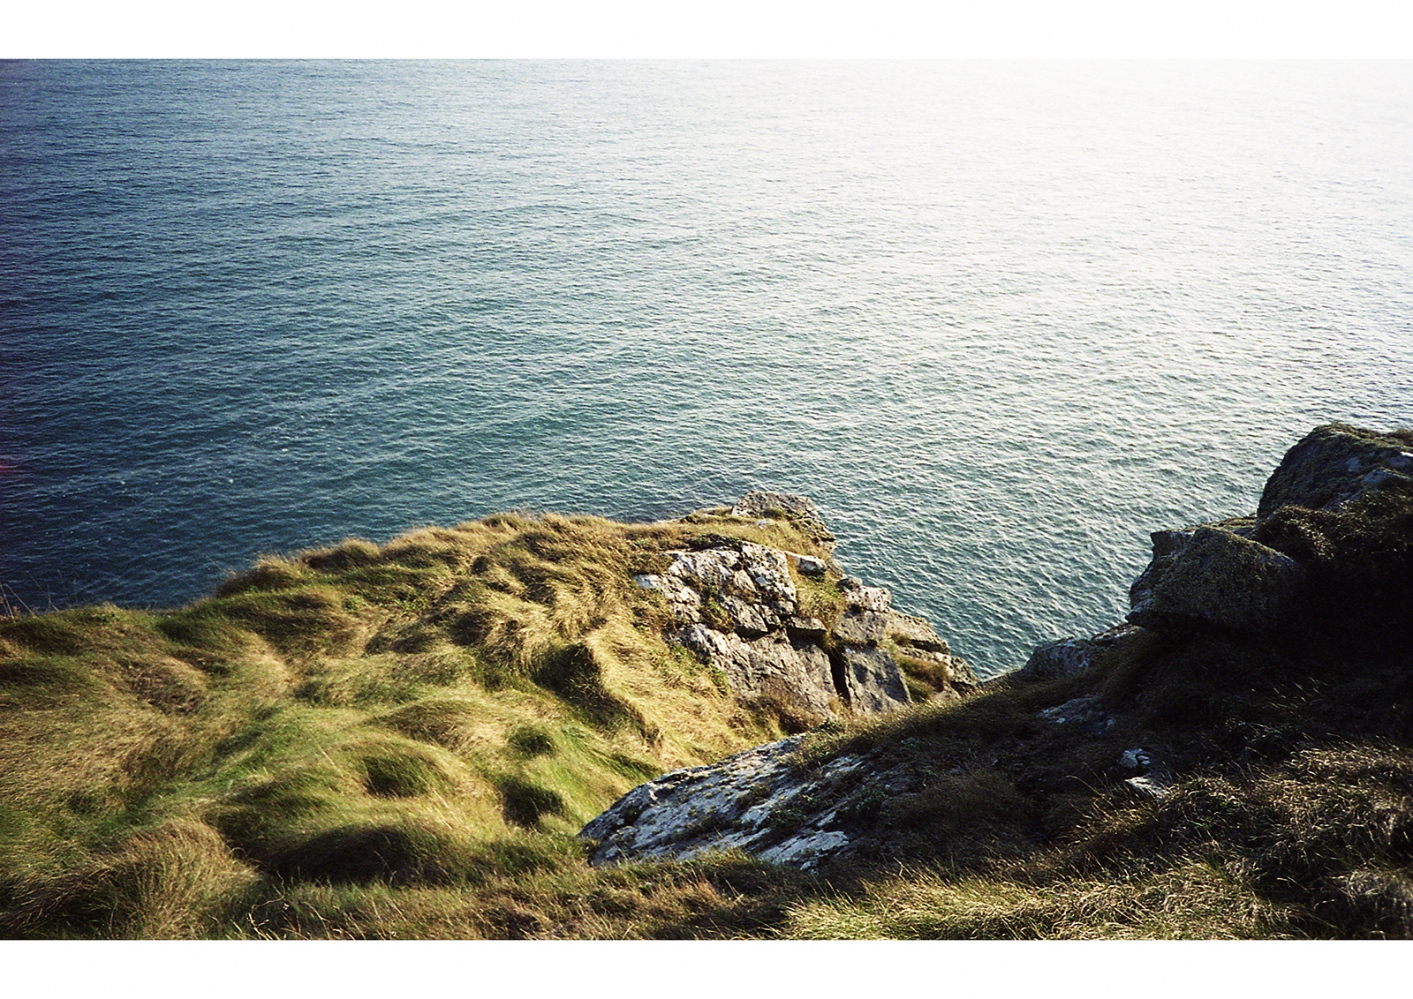 Near the Edge of a Cliff